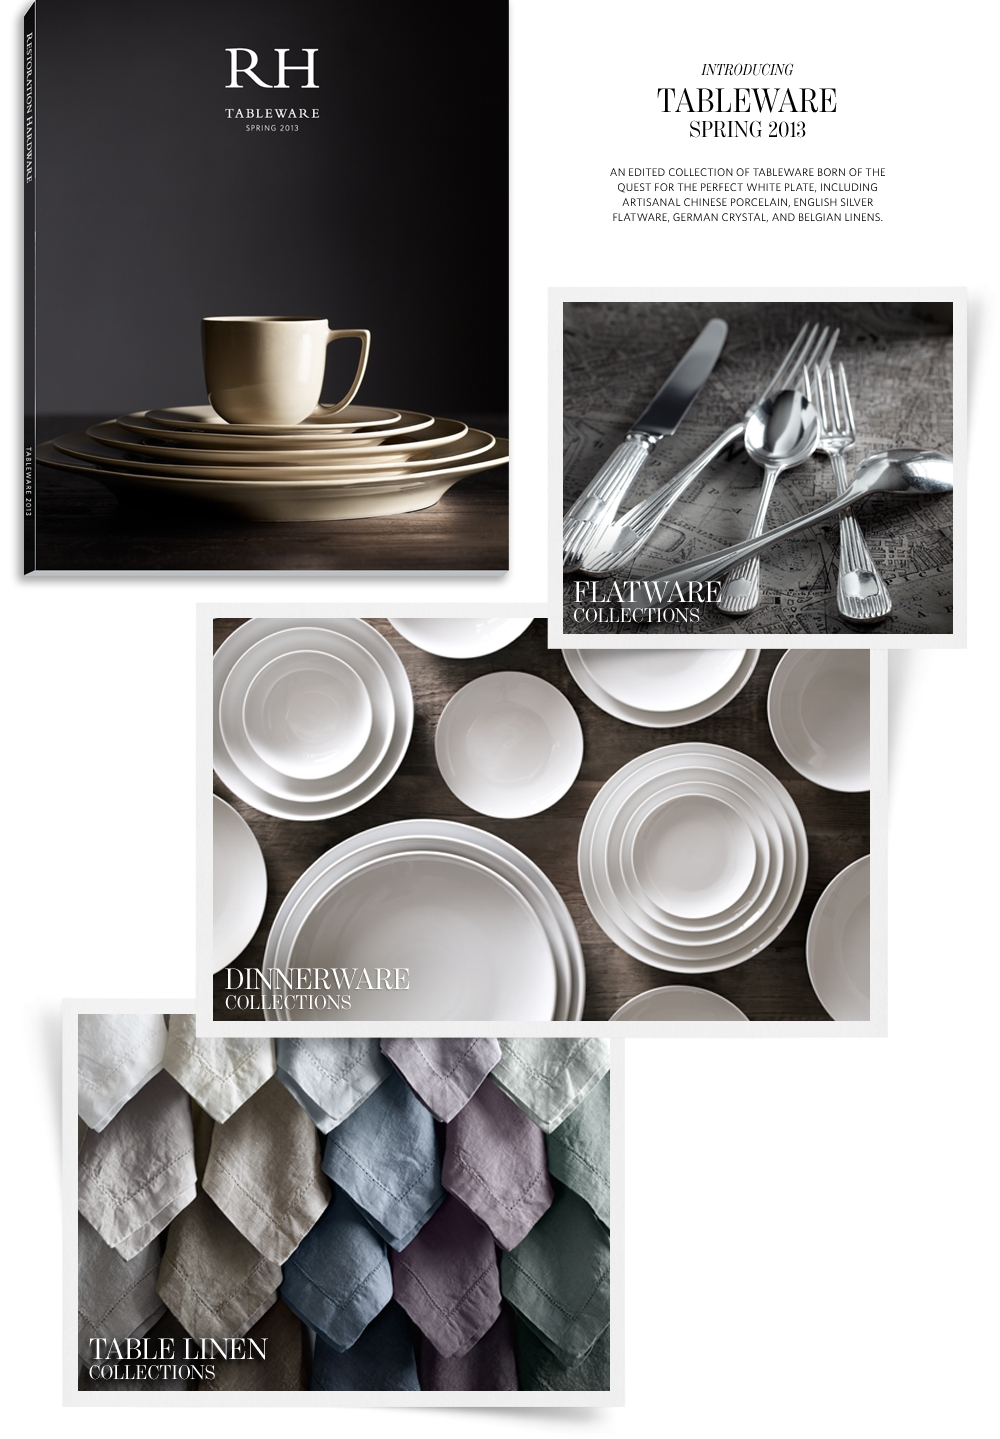 Introducing RH Tableware